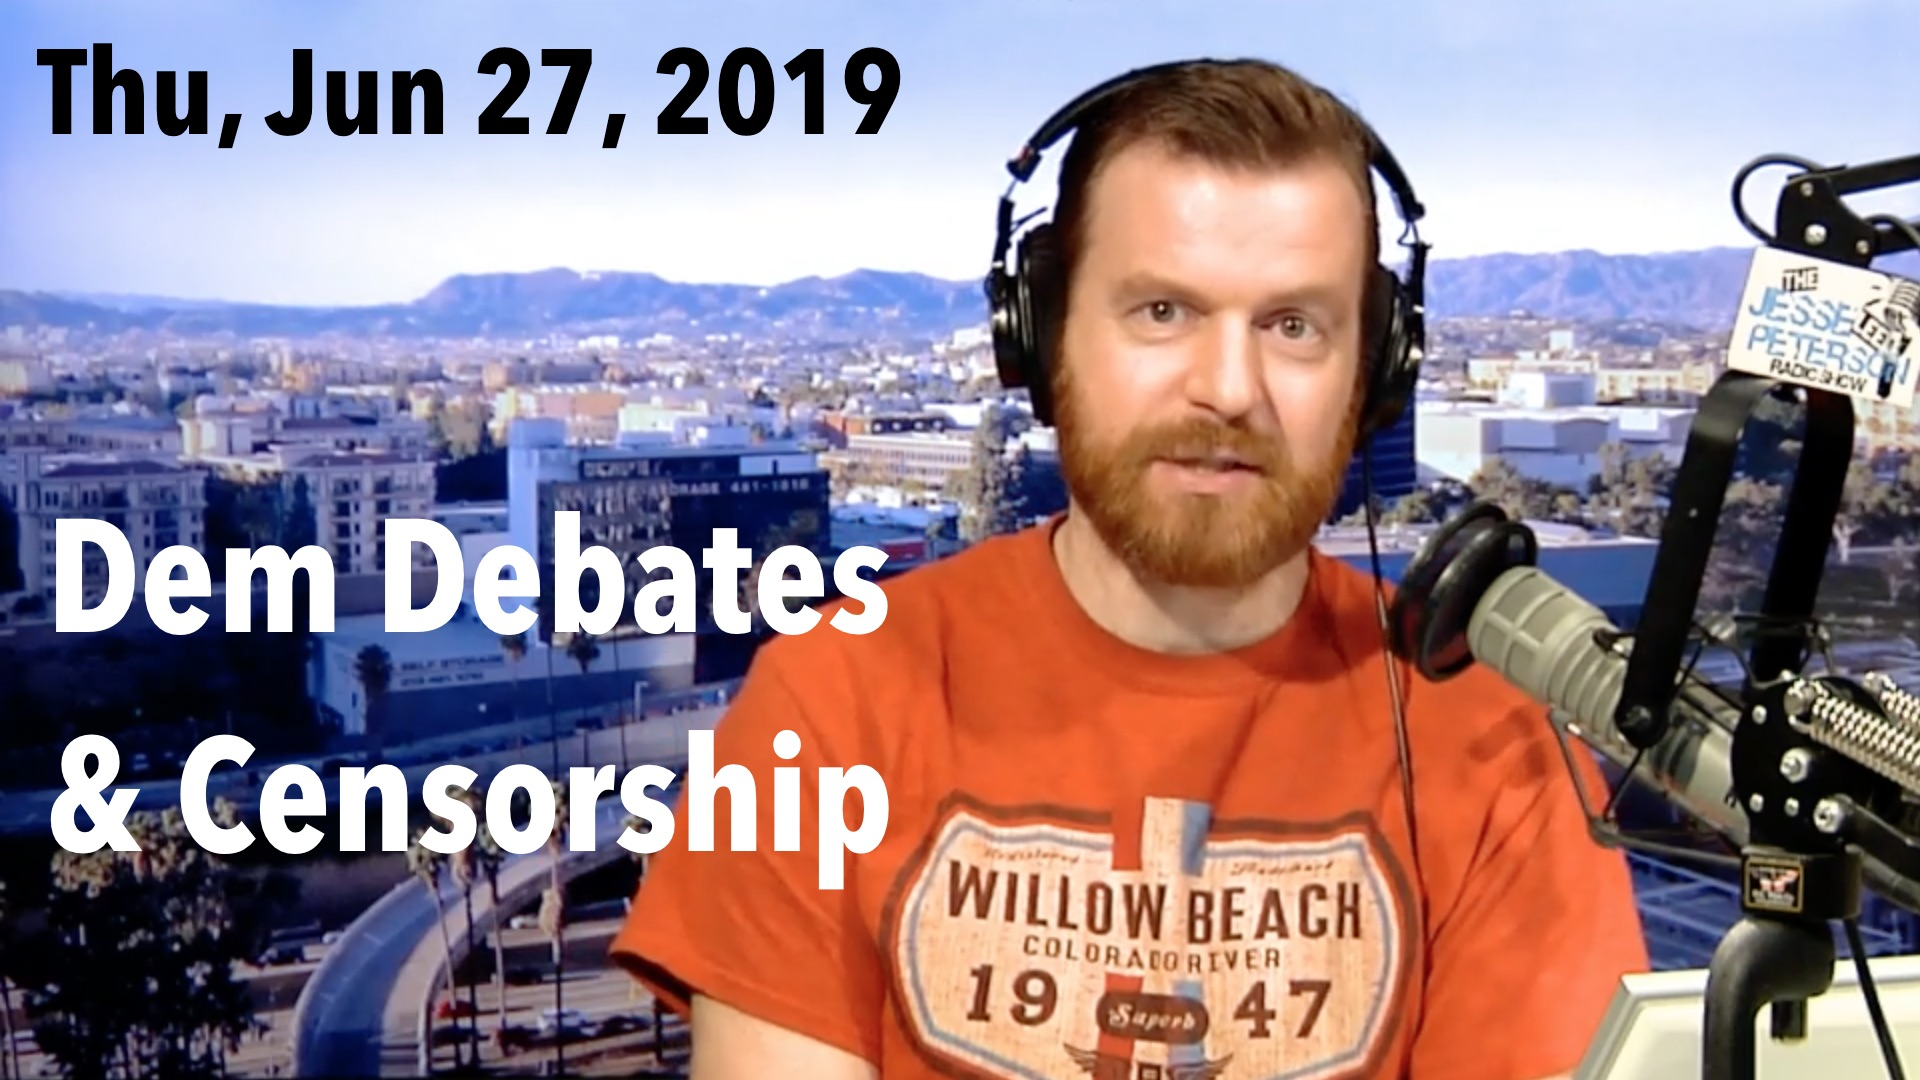 Thumbnail from Thursday, June 27, 2019: Democrat Debates and Censorship of Trump supporters